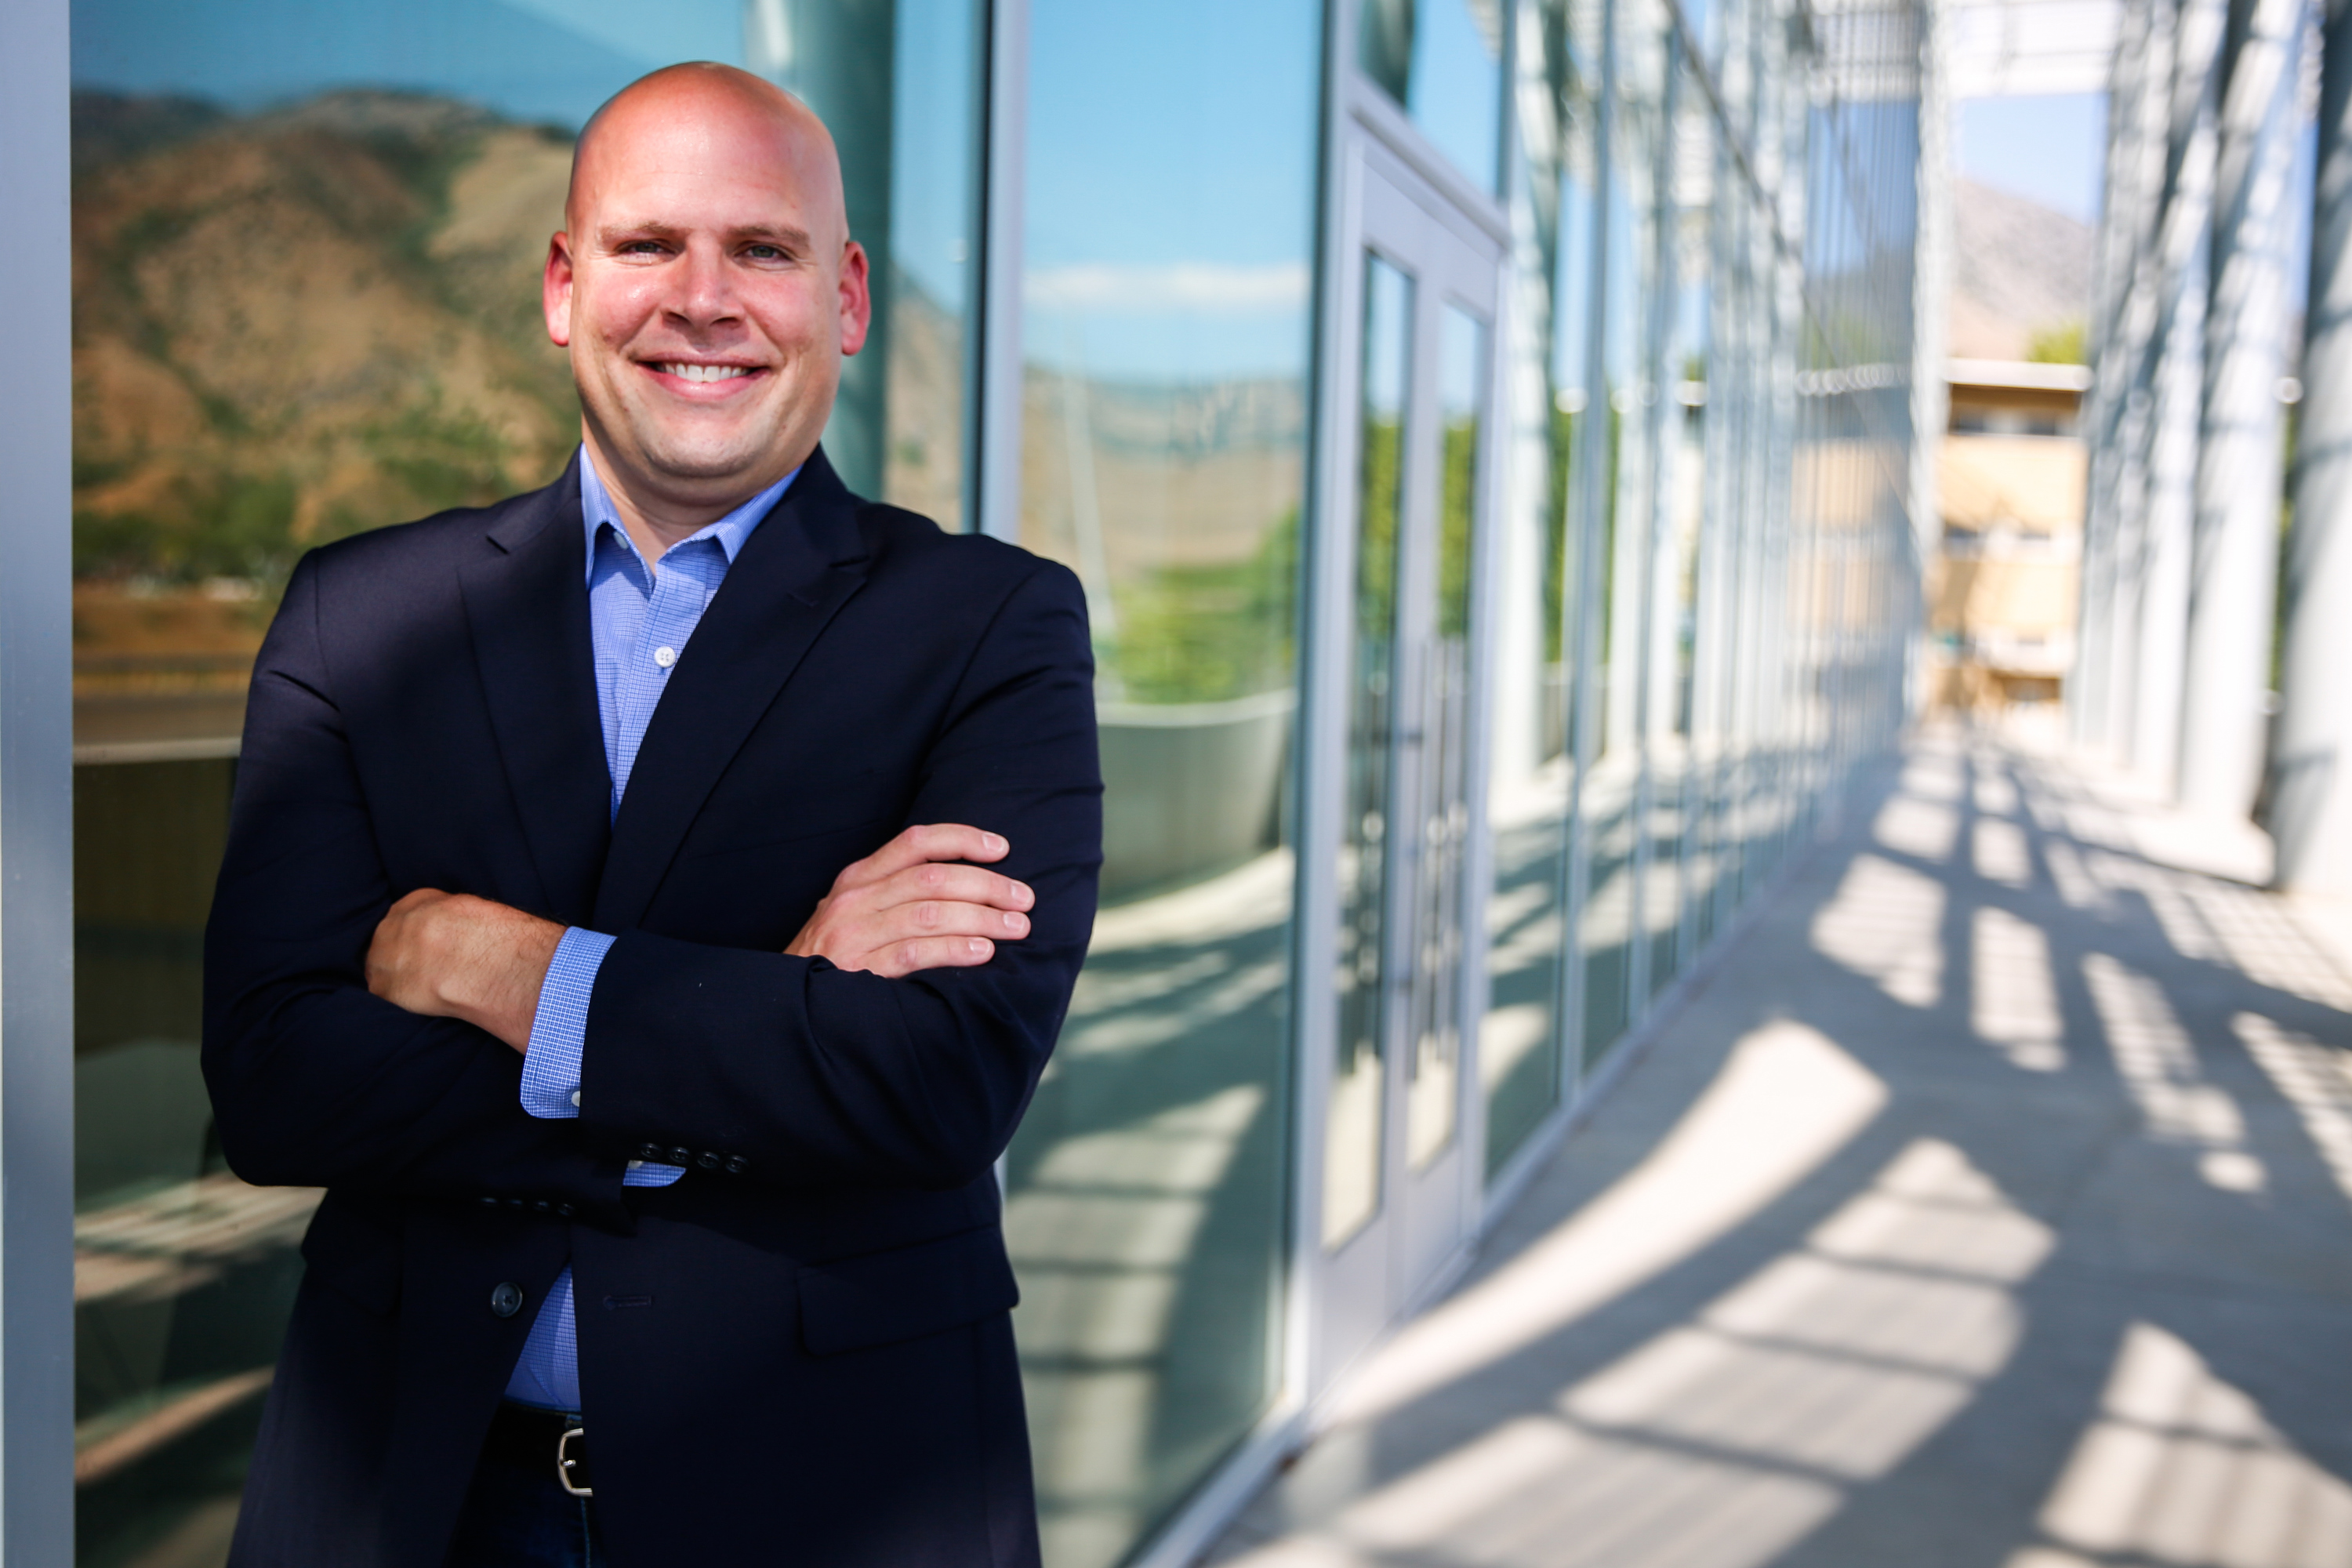 Christopher Koopman, executive director at the Center for Growth and Opportunity at Utah State State University, poses for a portrait at Jon M. Huntsman Hall at Utah State University in Logan on Saturday, Aug. 29, 2020.